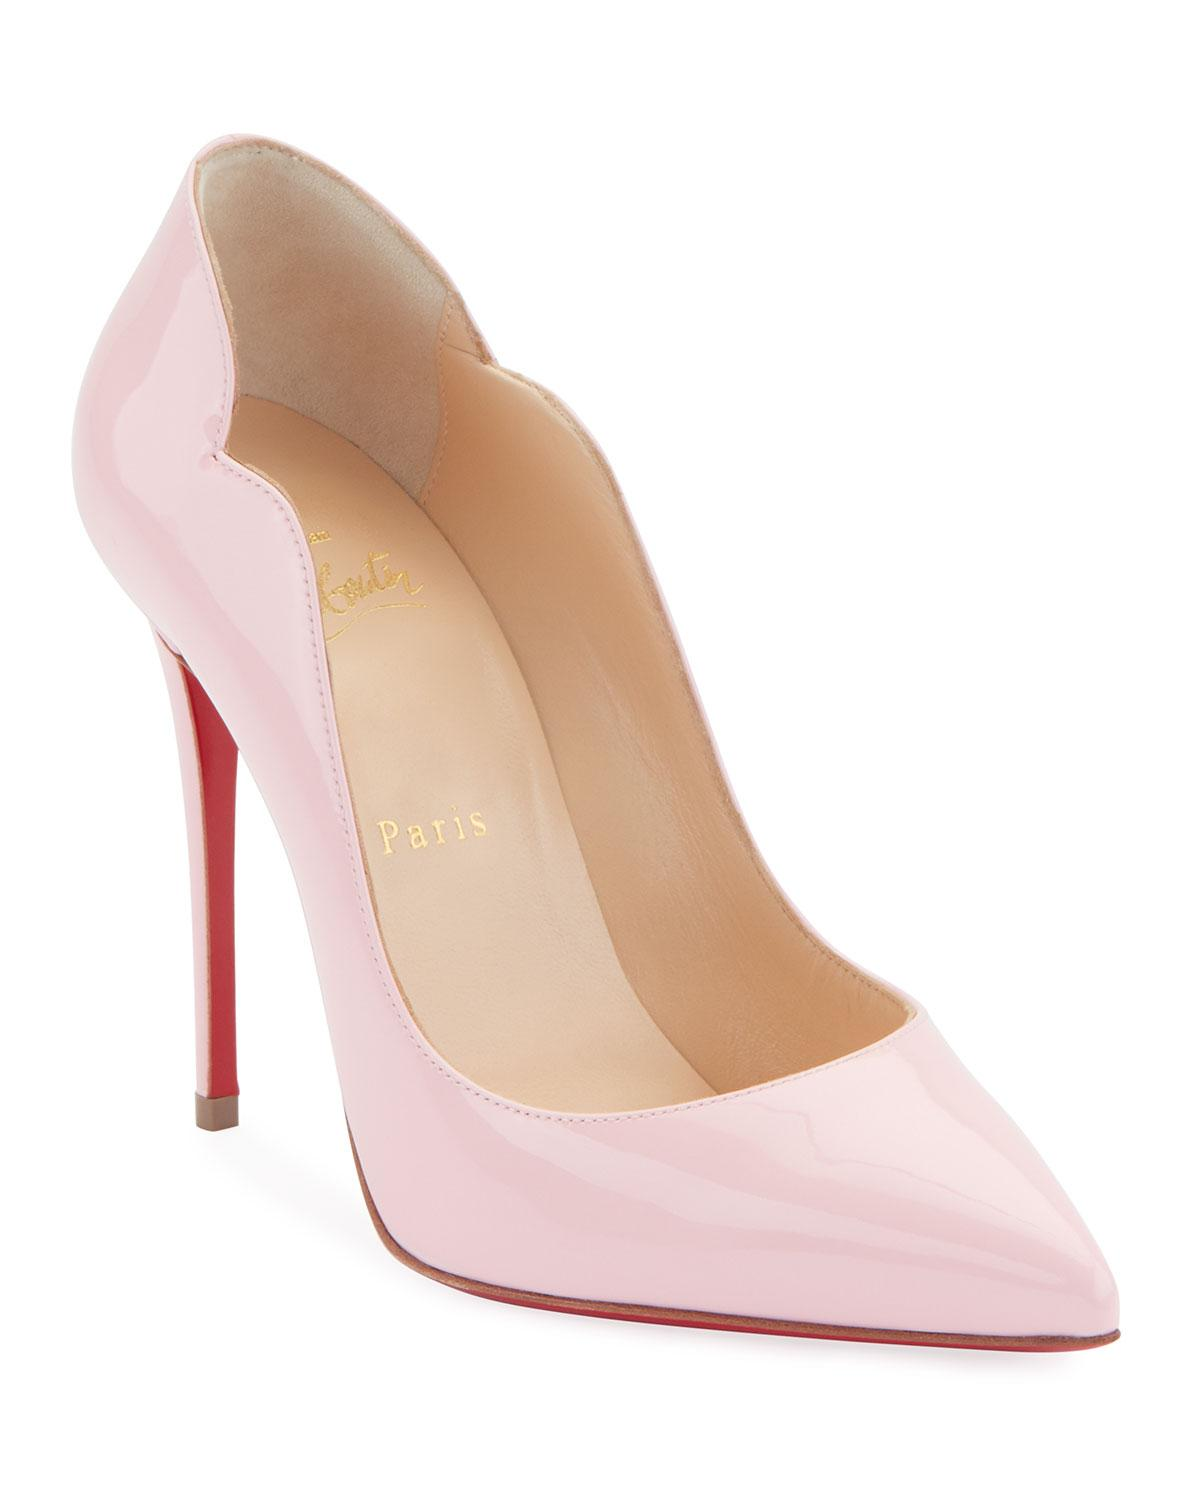 ddc84e4a819 Lyst - Christian Louboutin Hot Chick in Pink